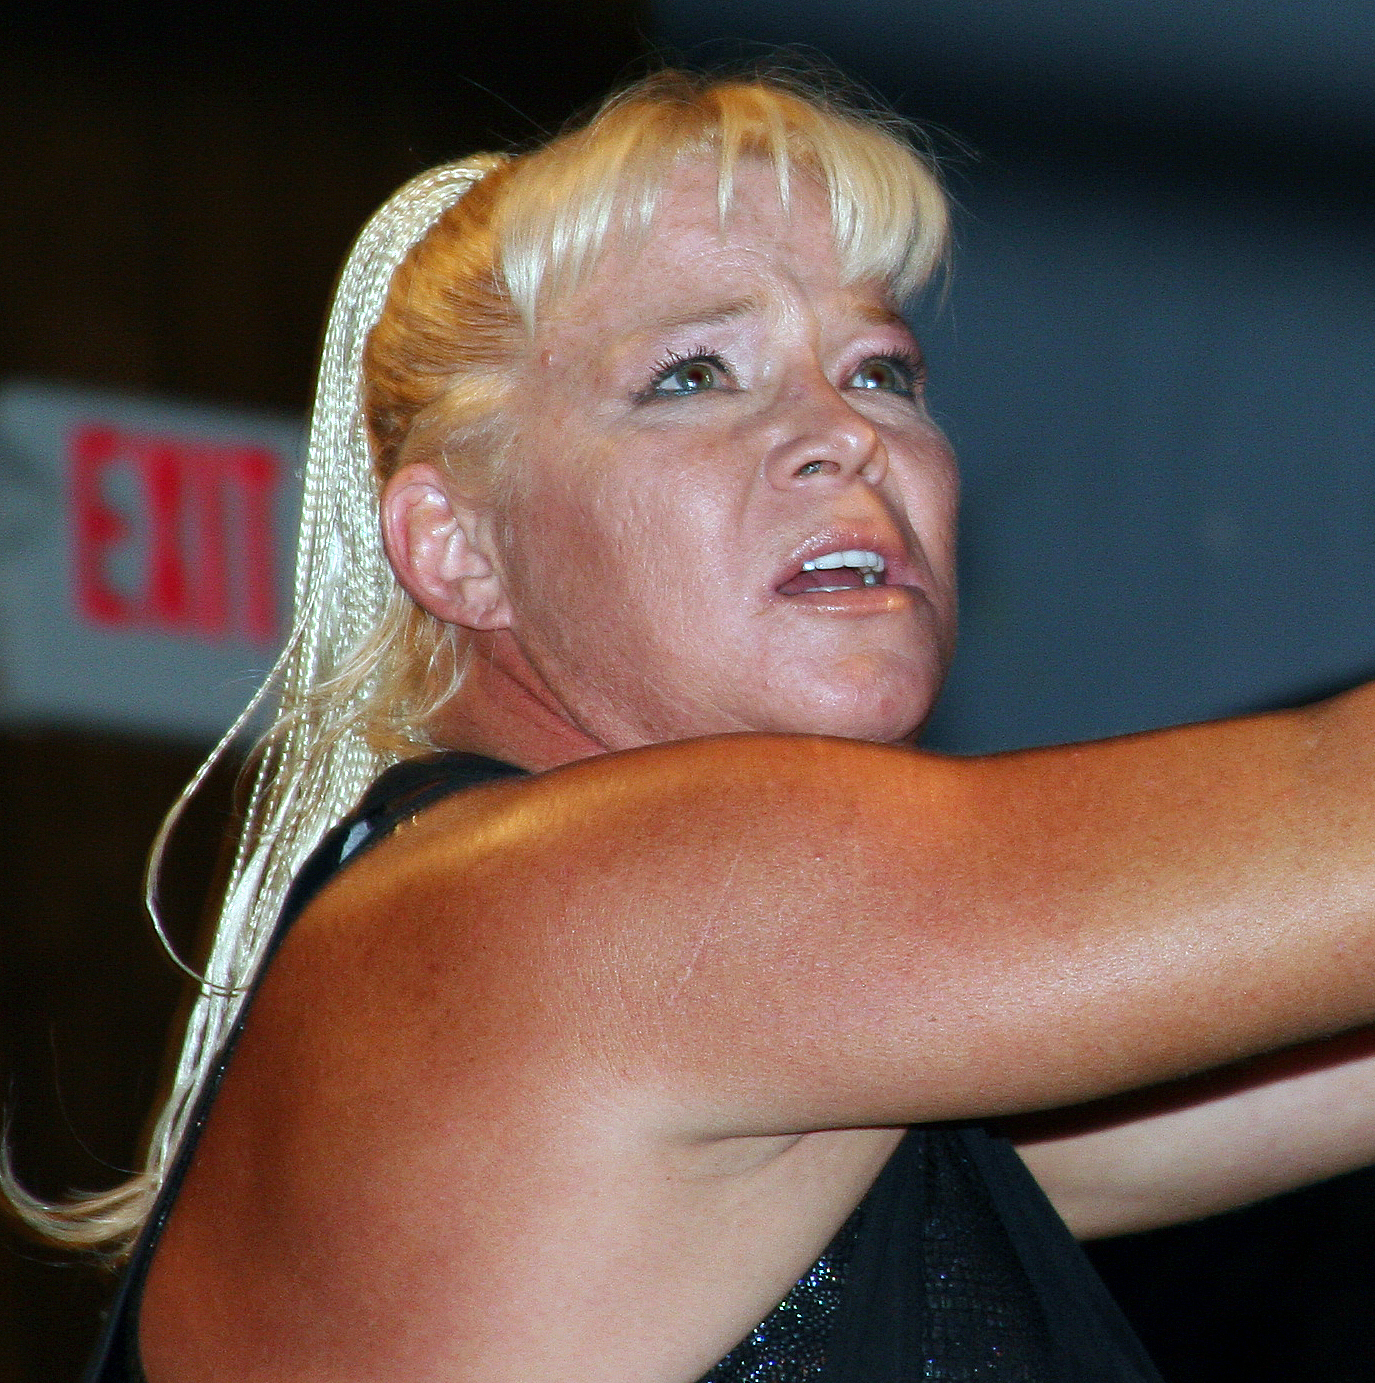 Luna Vachon at The Top Rope